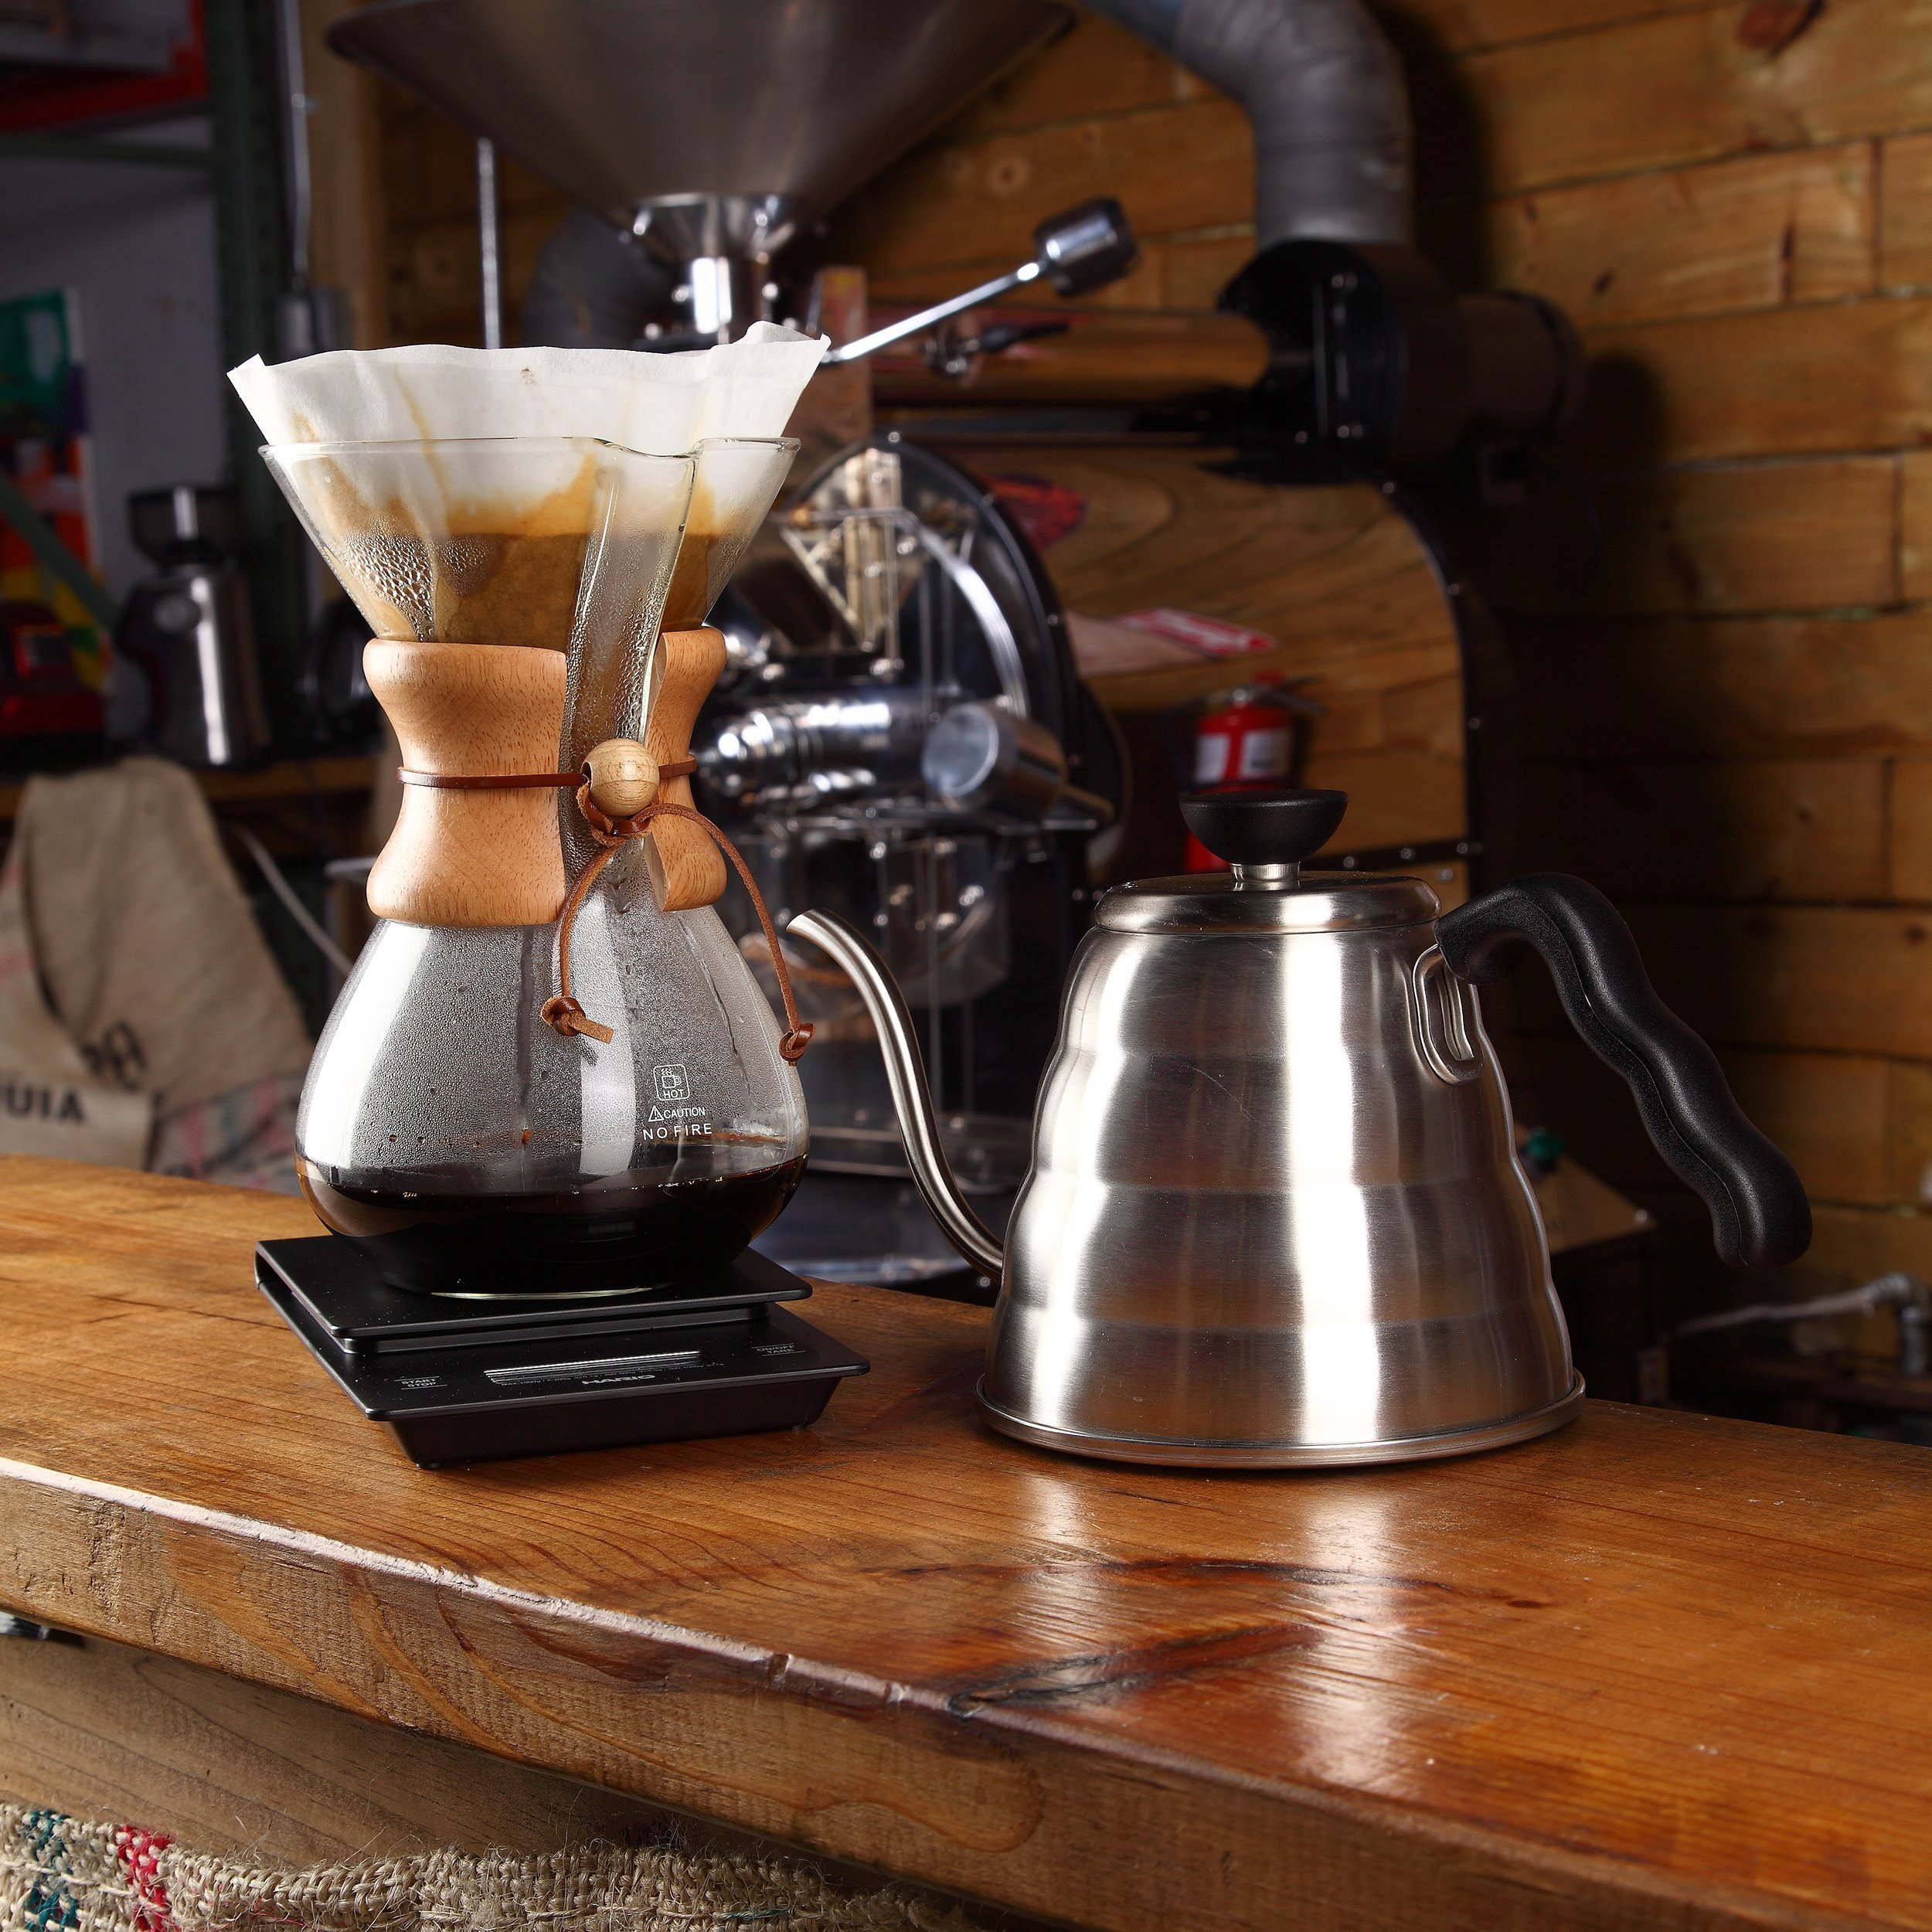 Pour Over Coffee Maker   Classic Hand Drip Brewer for Paper Filter   Hand Crafted Strong Borosilicate Glass with Lid, Easy Clean and Better Coffee by LePrem (Image #5)